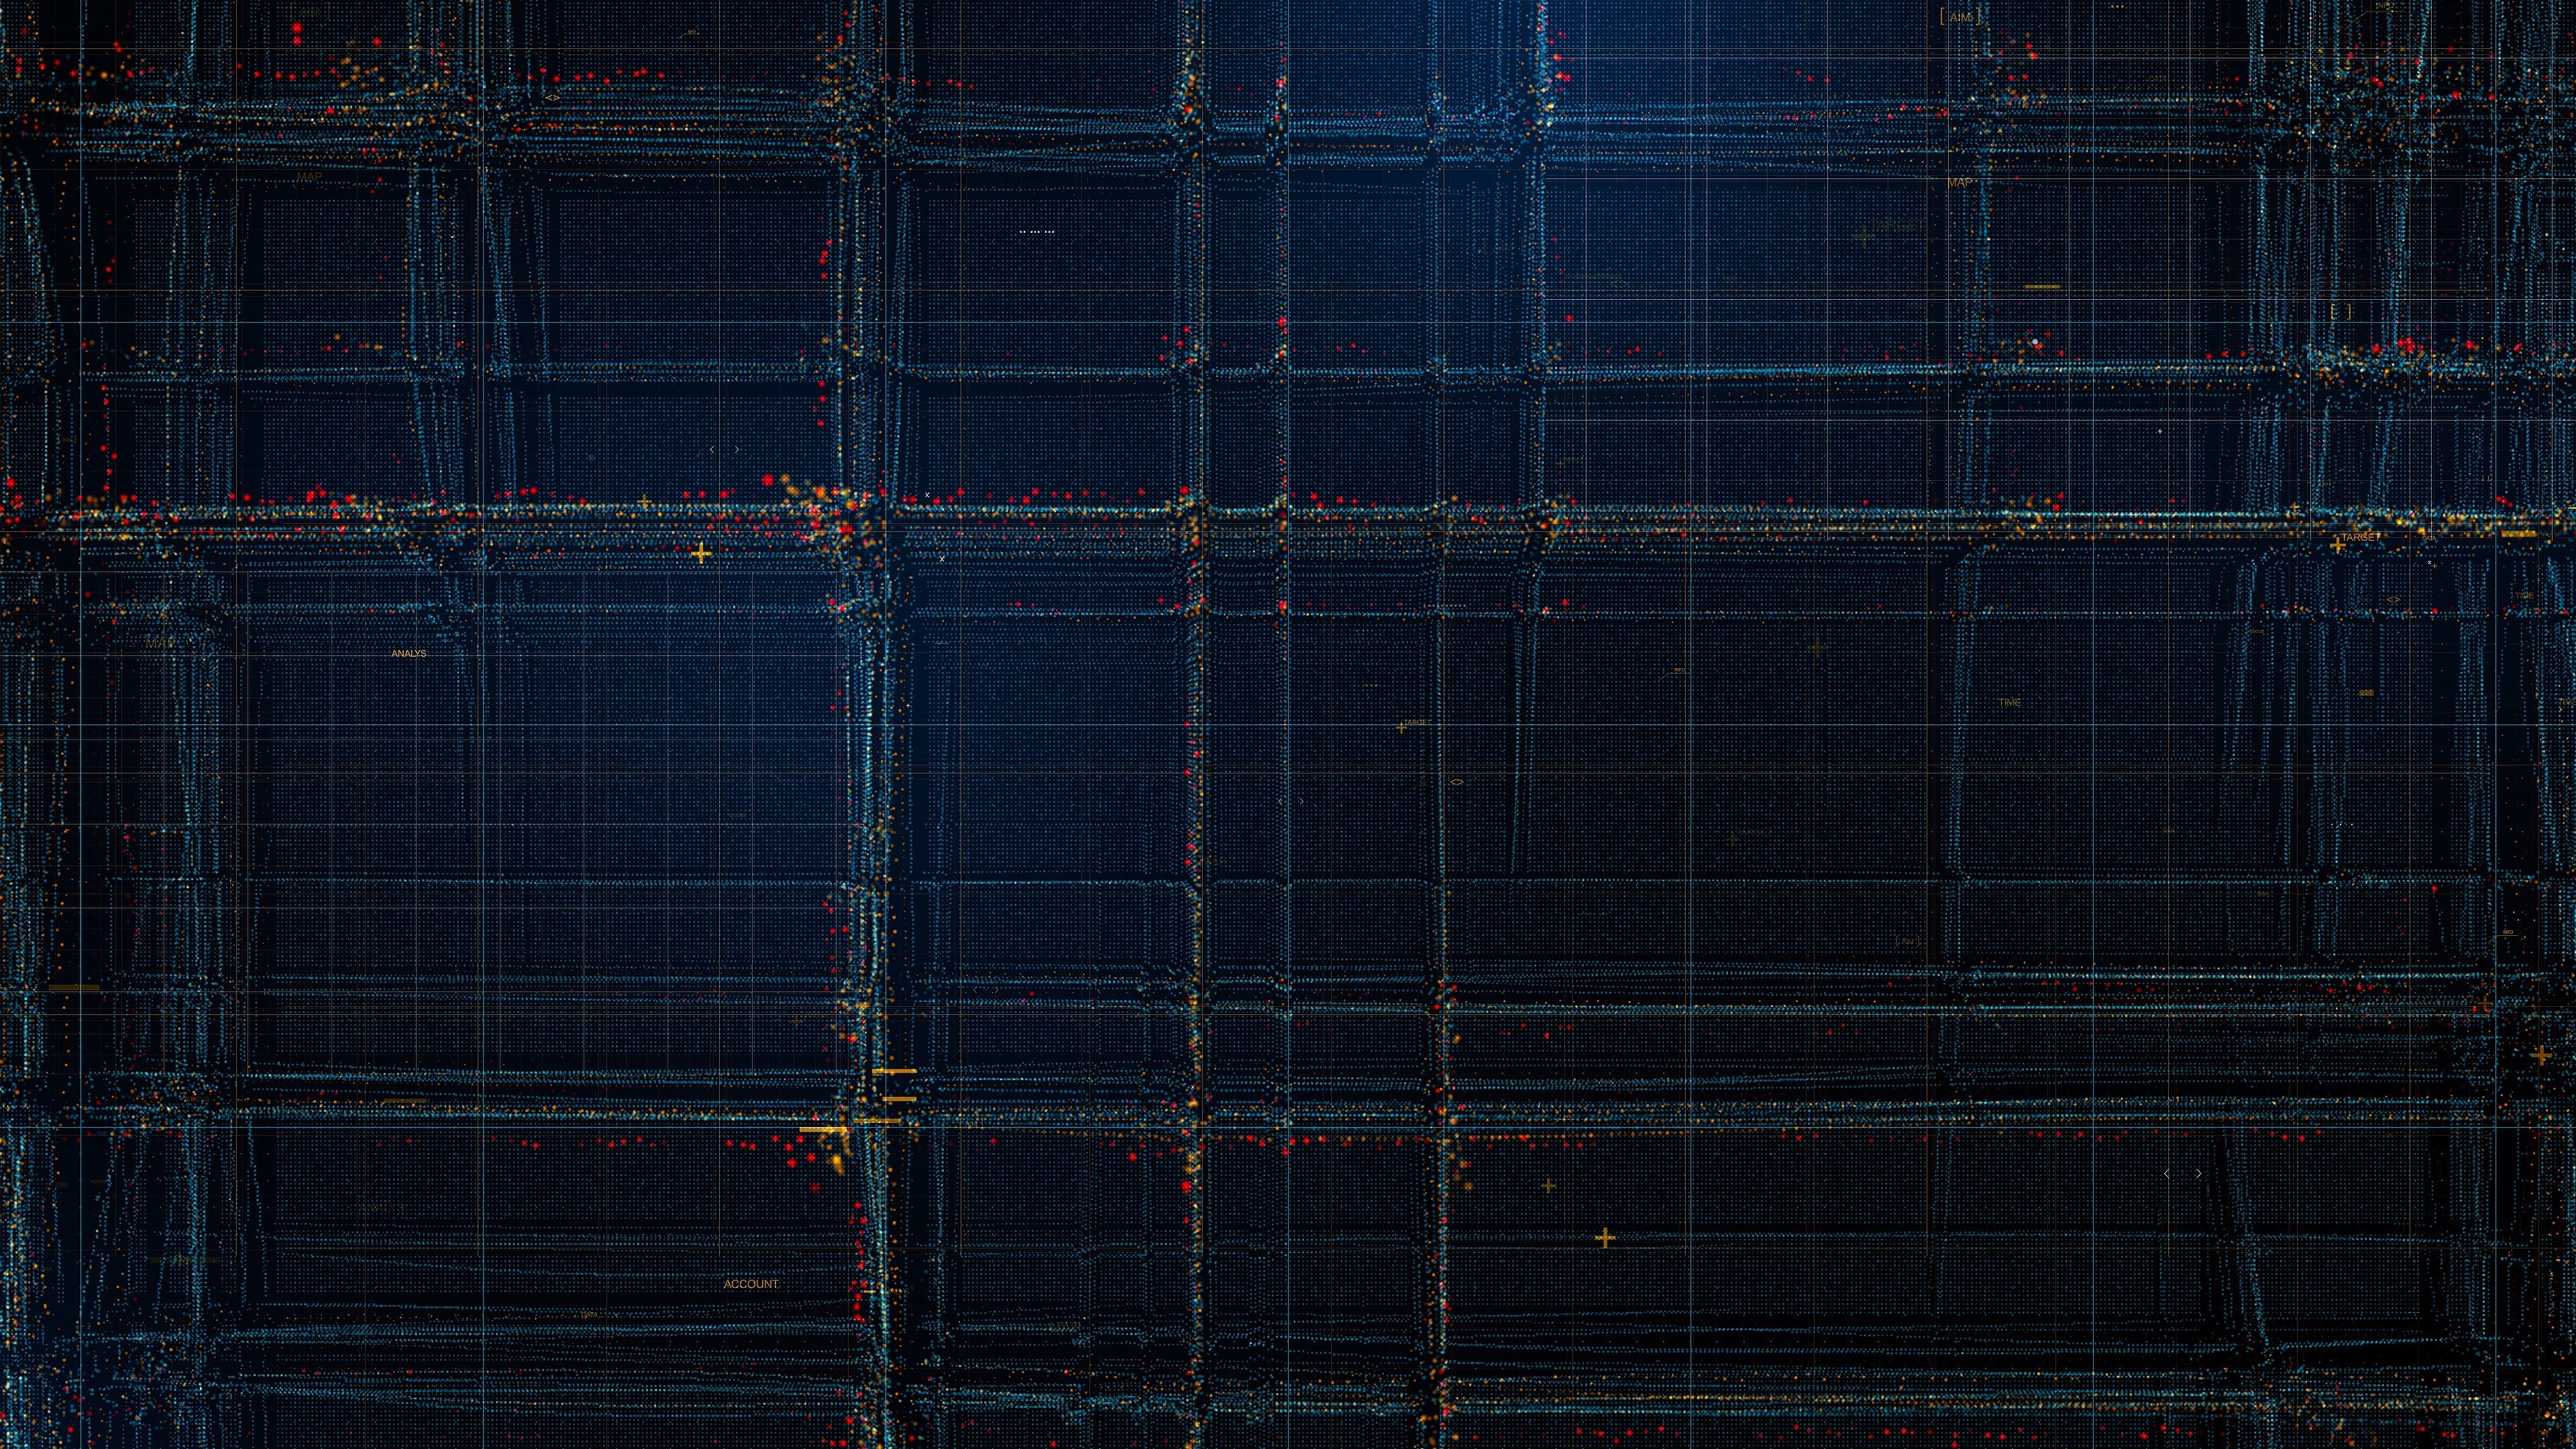 Particles, structure, lines, pattern, dark, 3840x2160 wallpaper